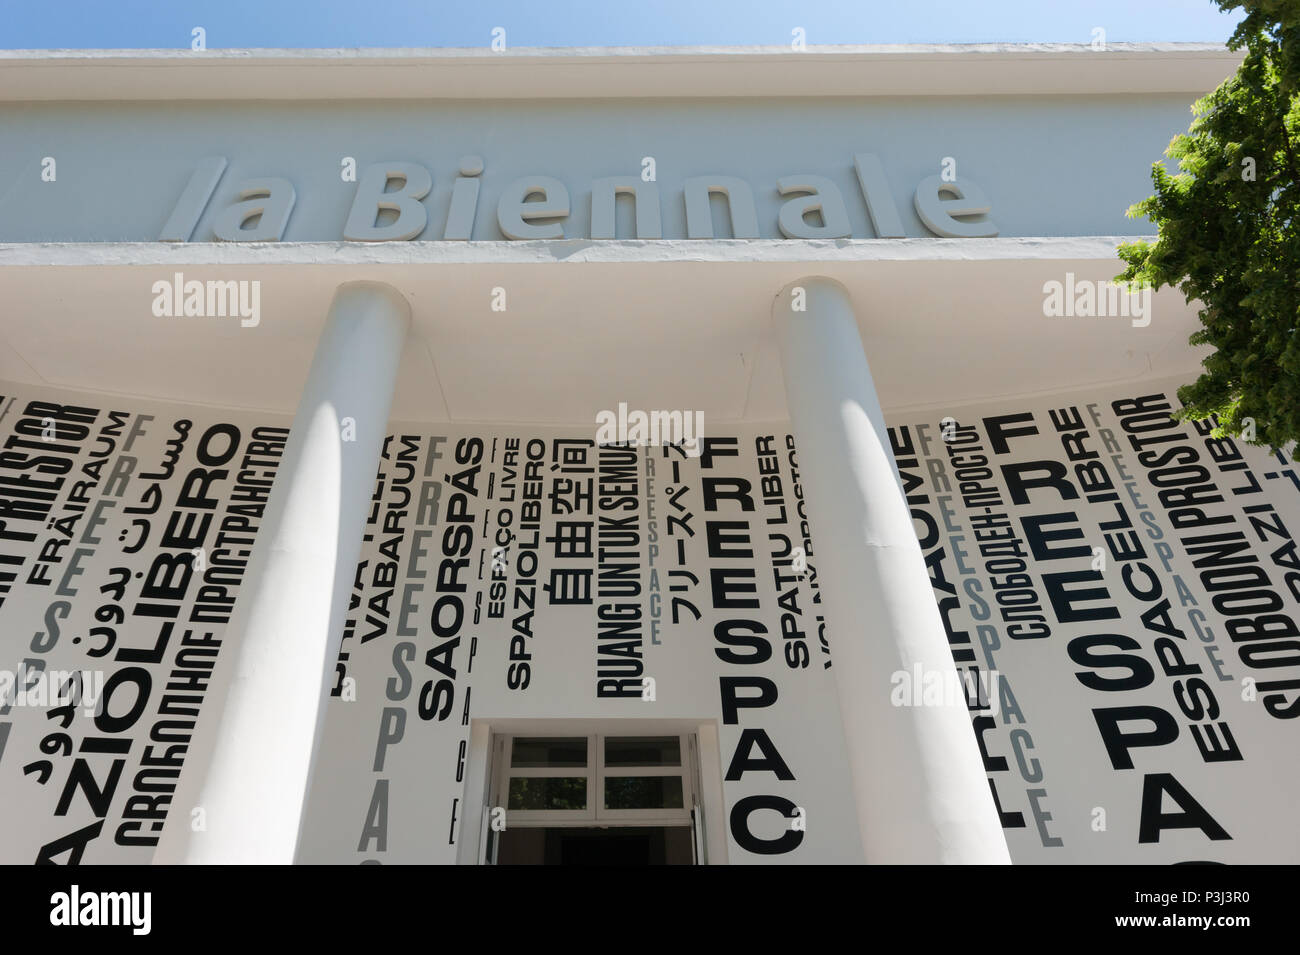 2018 Venice Architecture Biennale, Facade of the Central Pavilion at Giardini - Stock Image